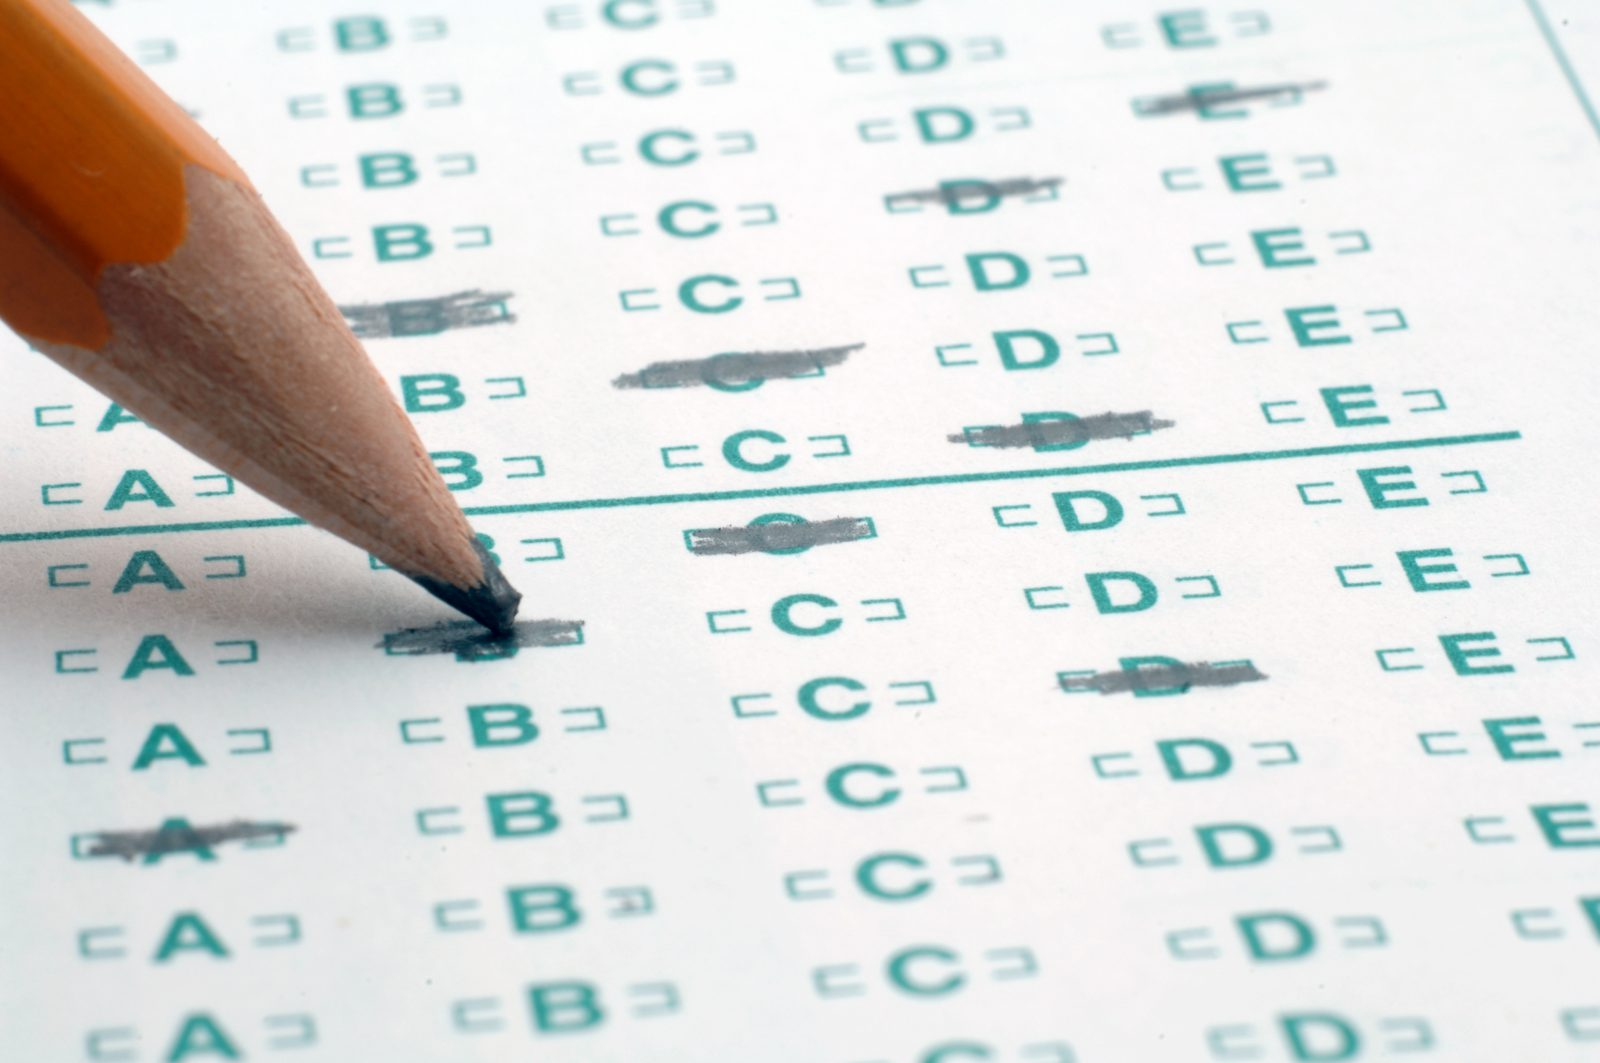 Scantron Scanners and Forms